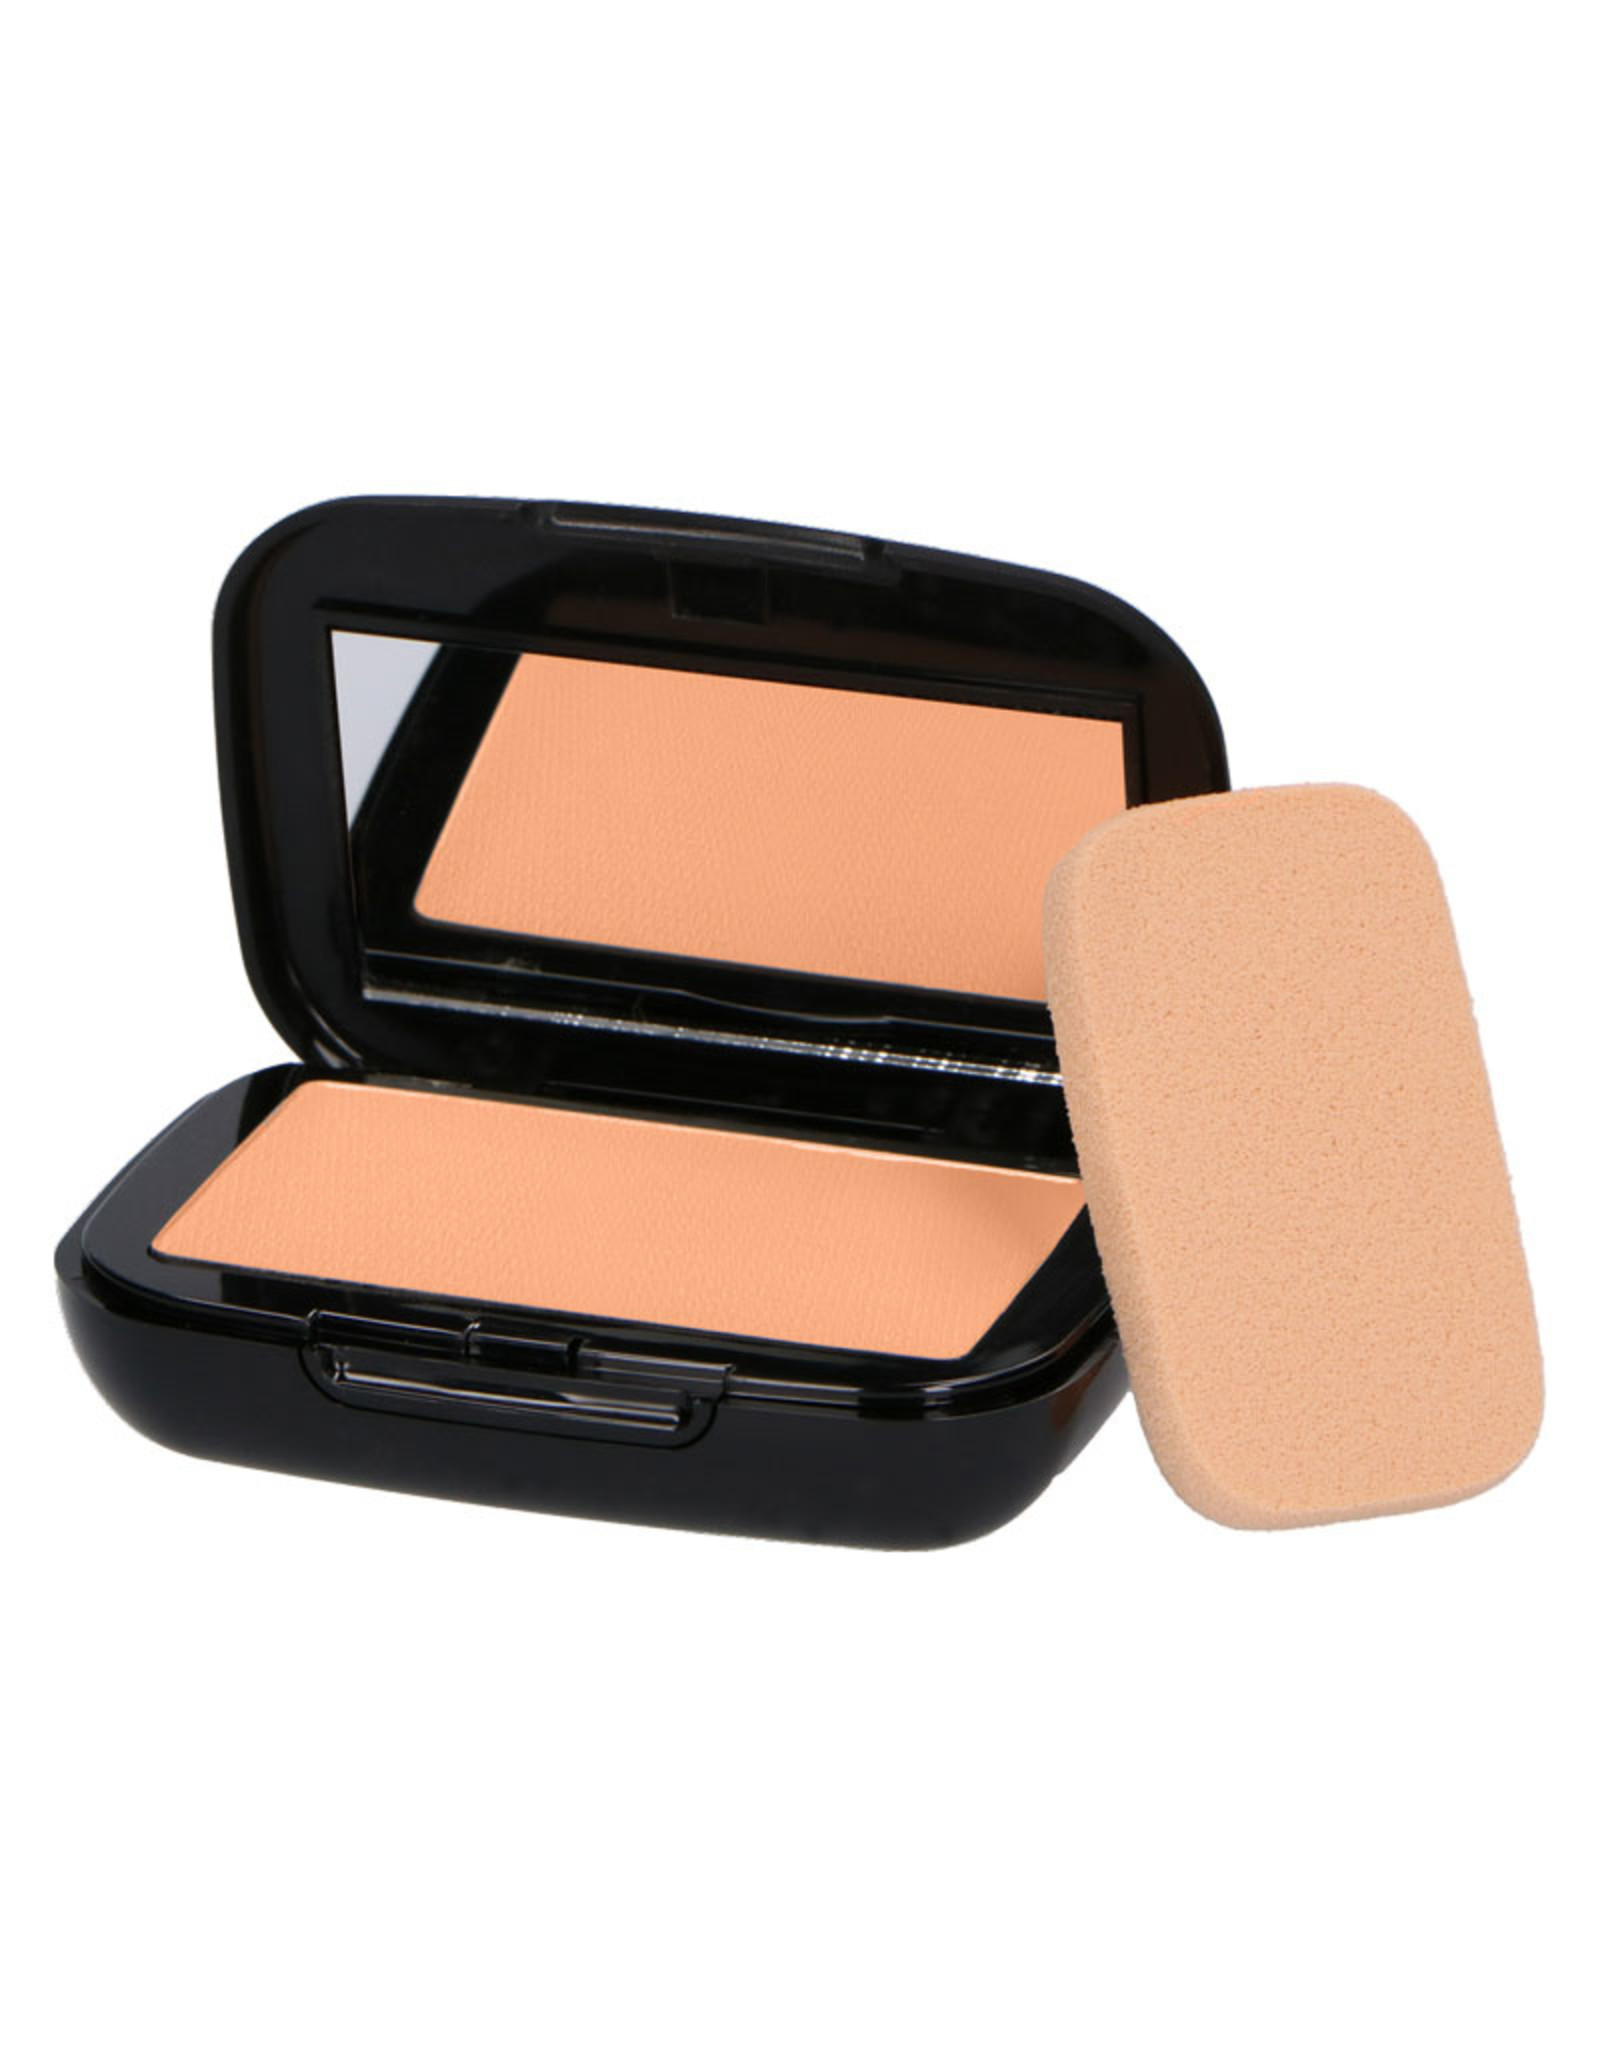 MAKE-UP STUDIO COMPACT POWDER MAKE-UP (3 IN 1) 2